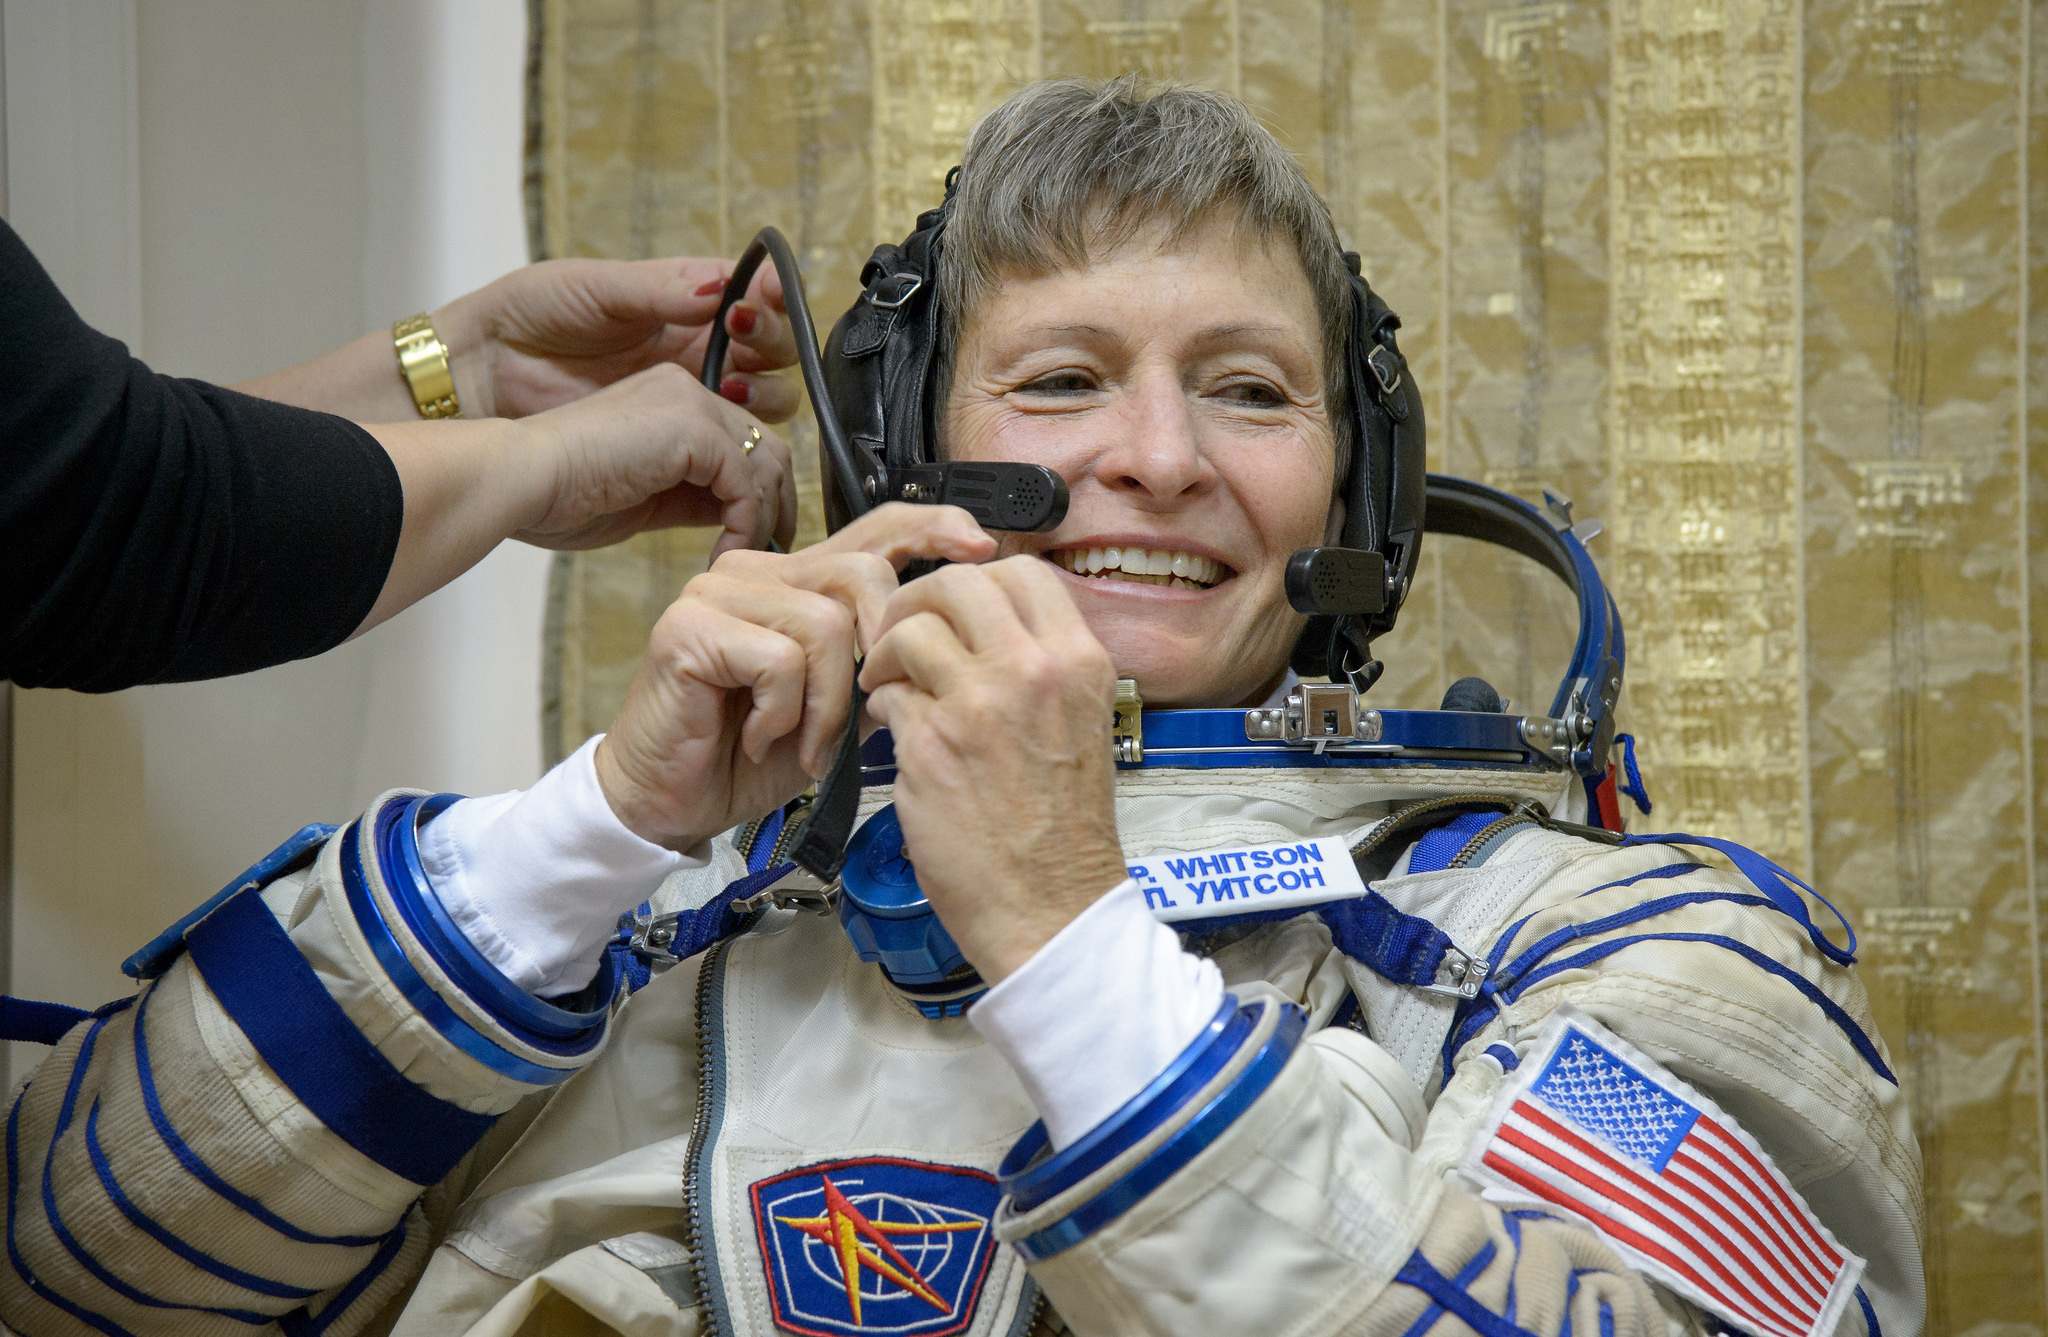 NASA's Peggy Whitson Becomes Oldest Woman in Space